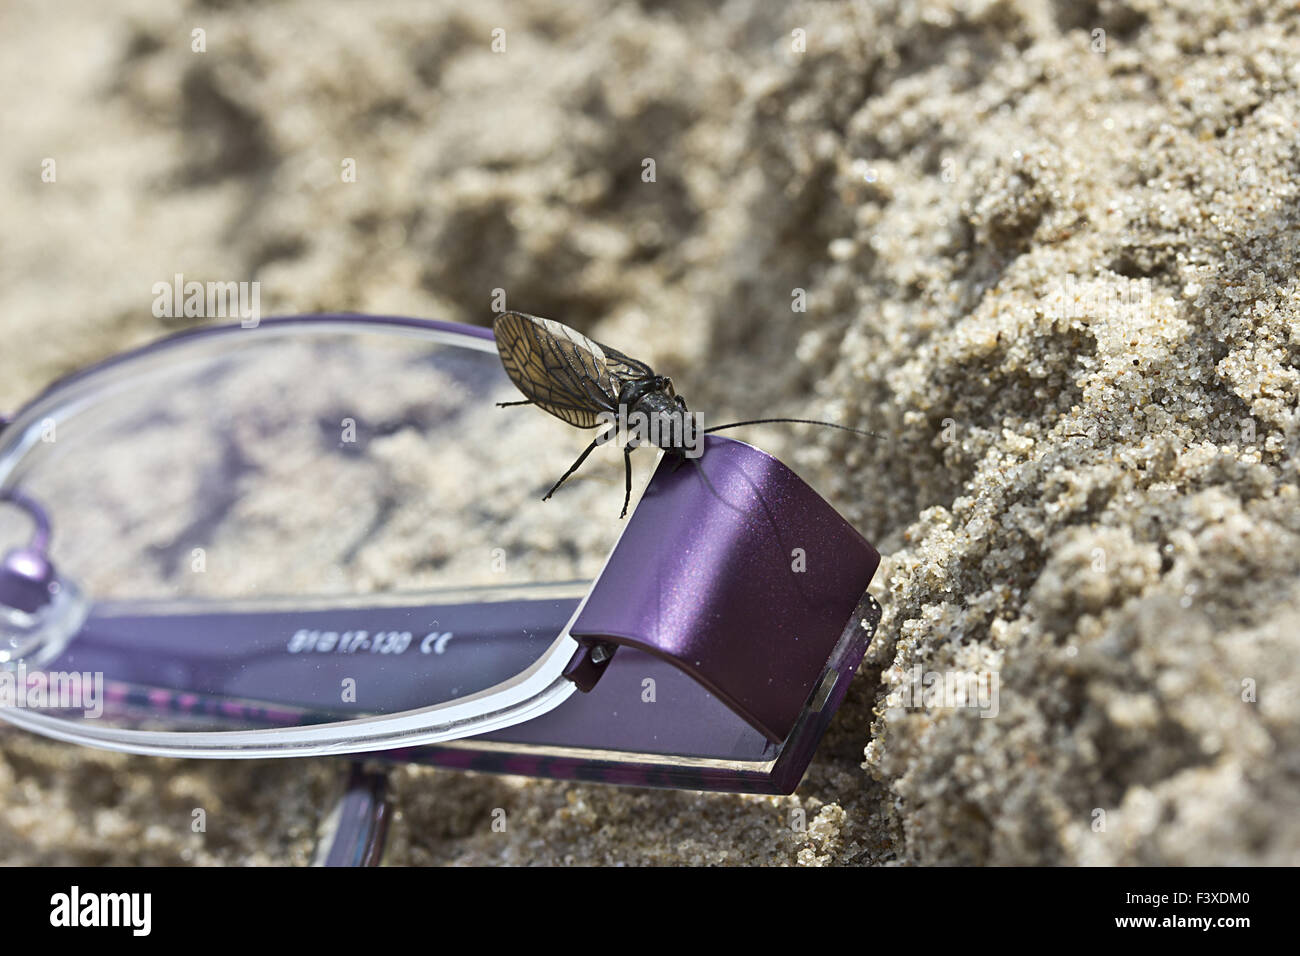 insect and eye glasses Stock Photo